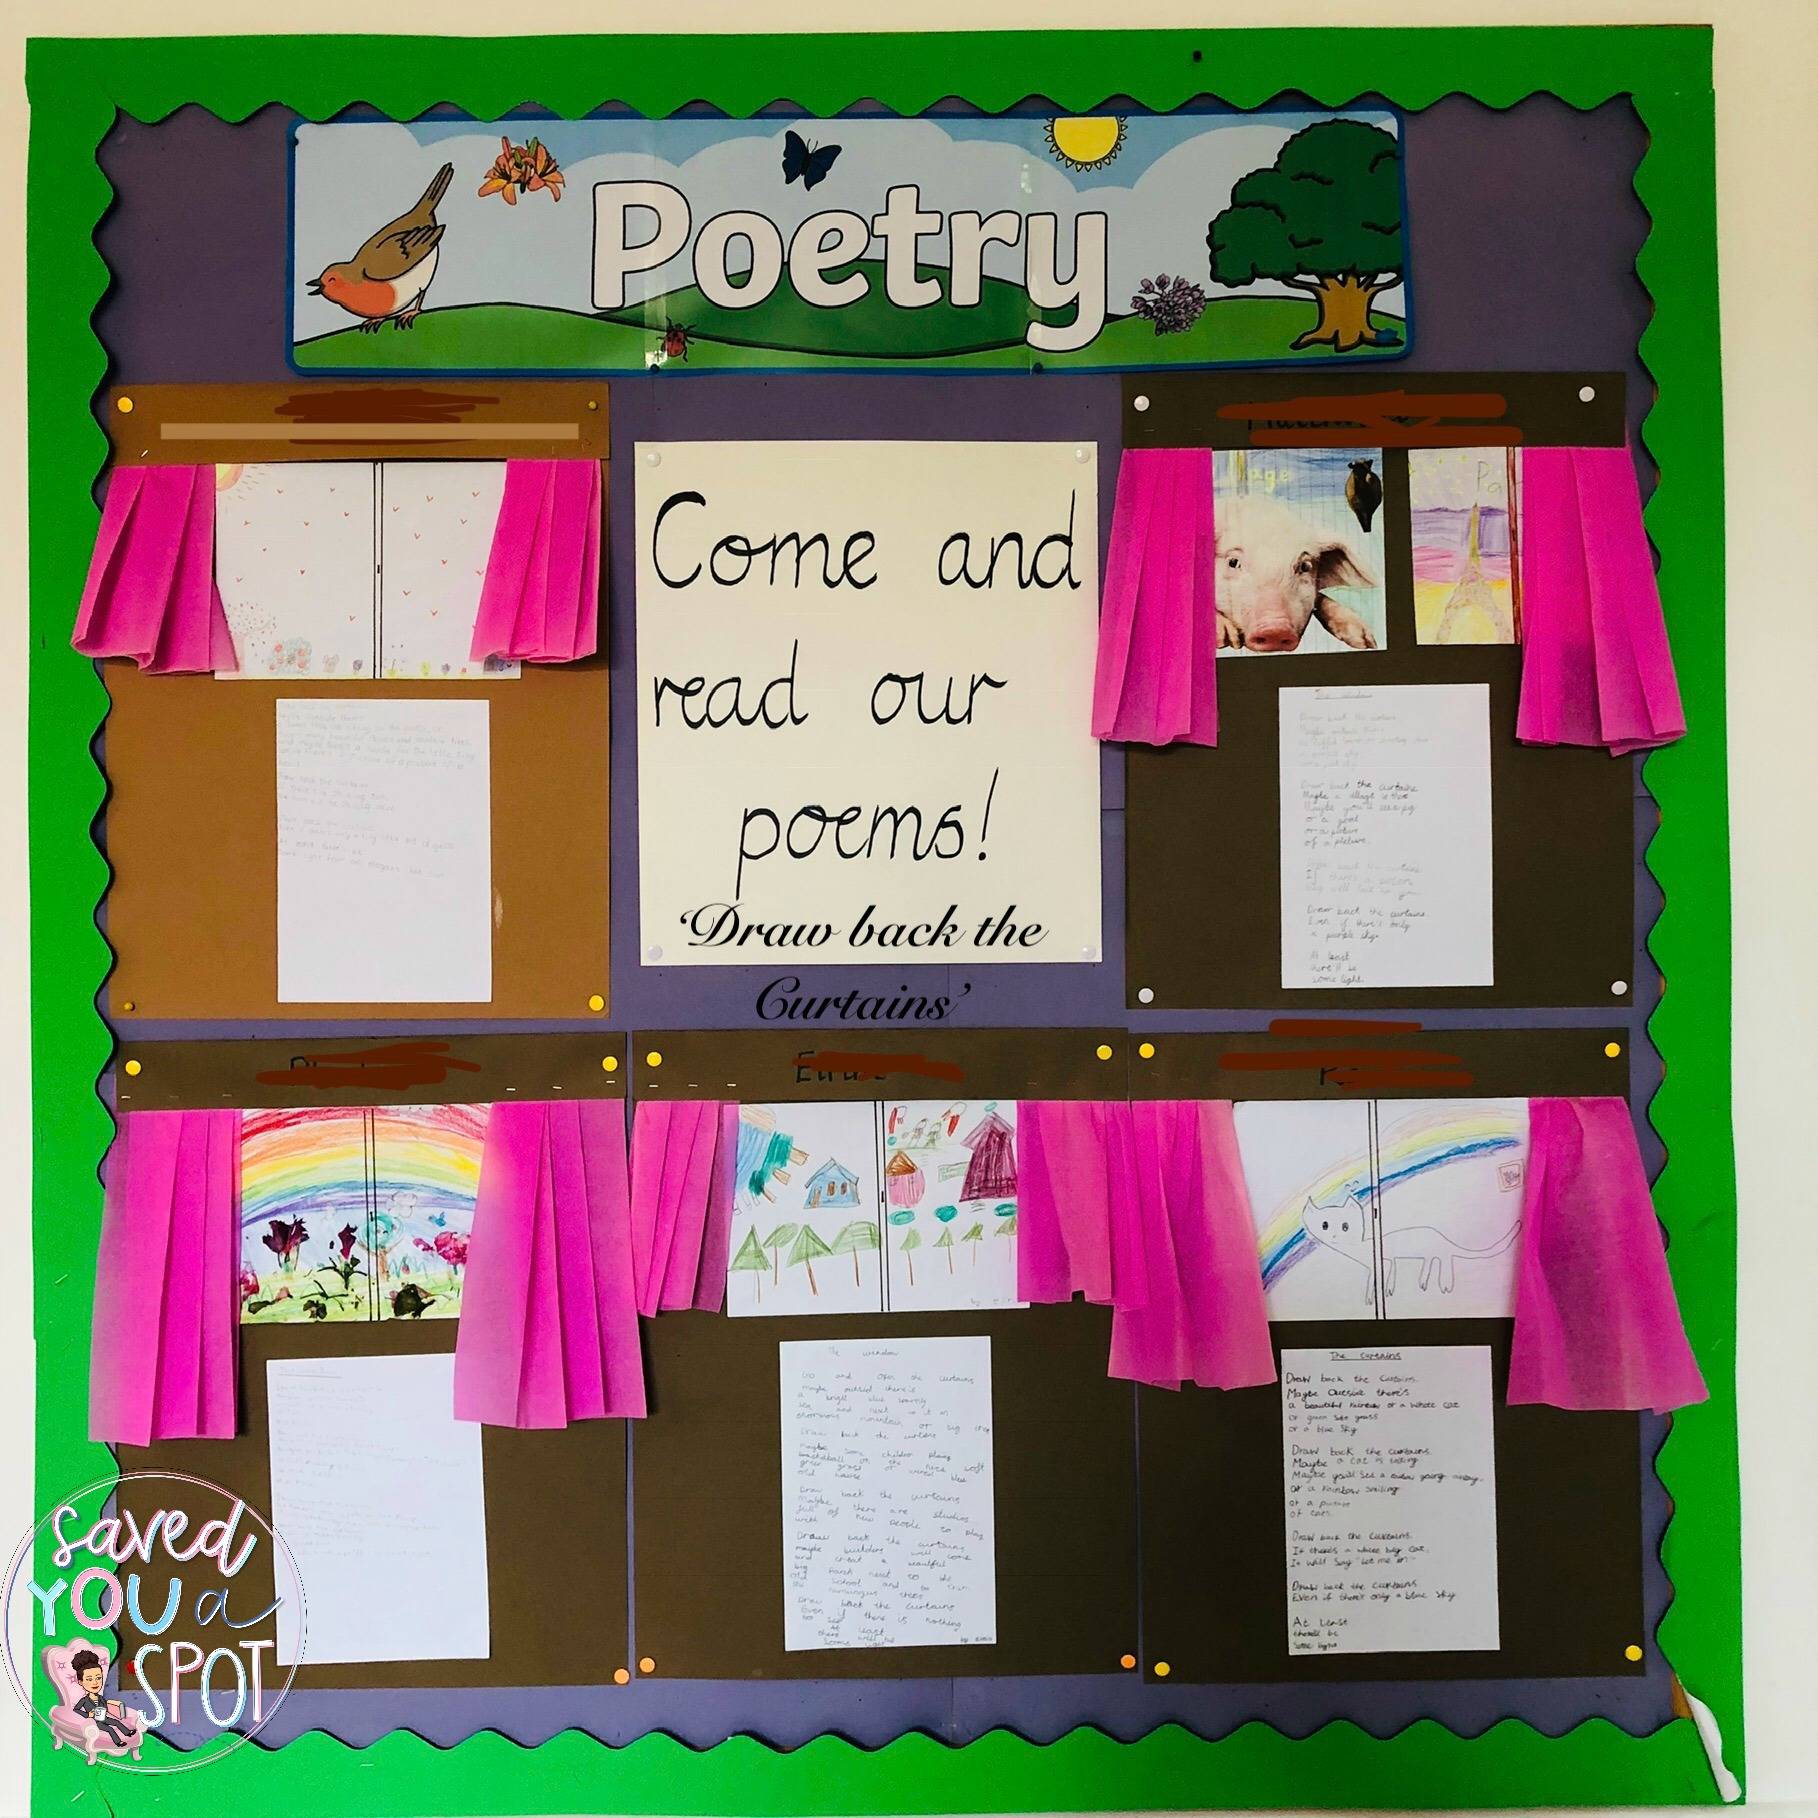 Poetry Display: Draw back the curtains – Saved you a Spot